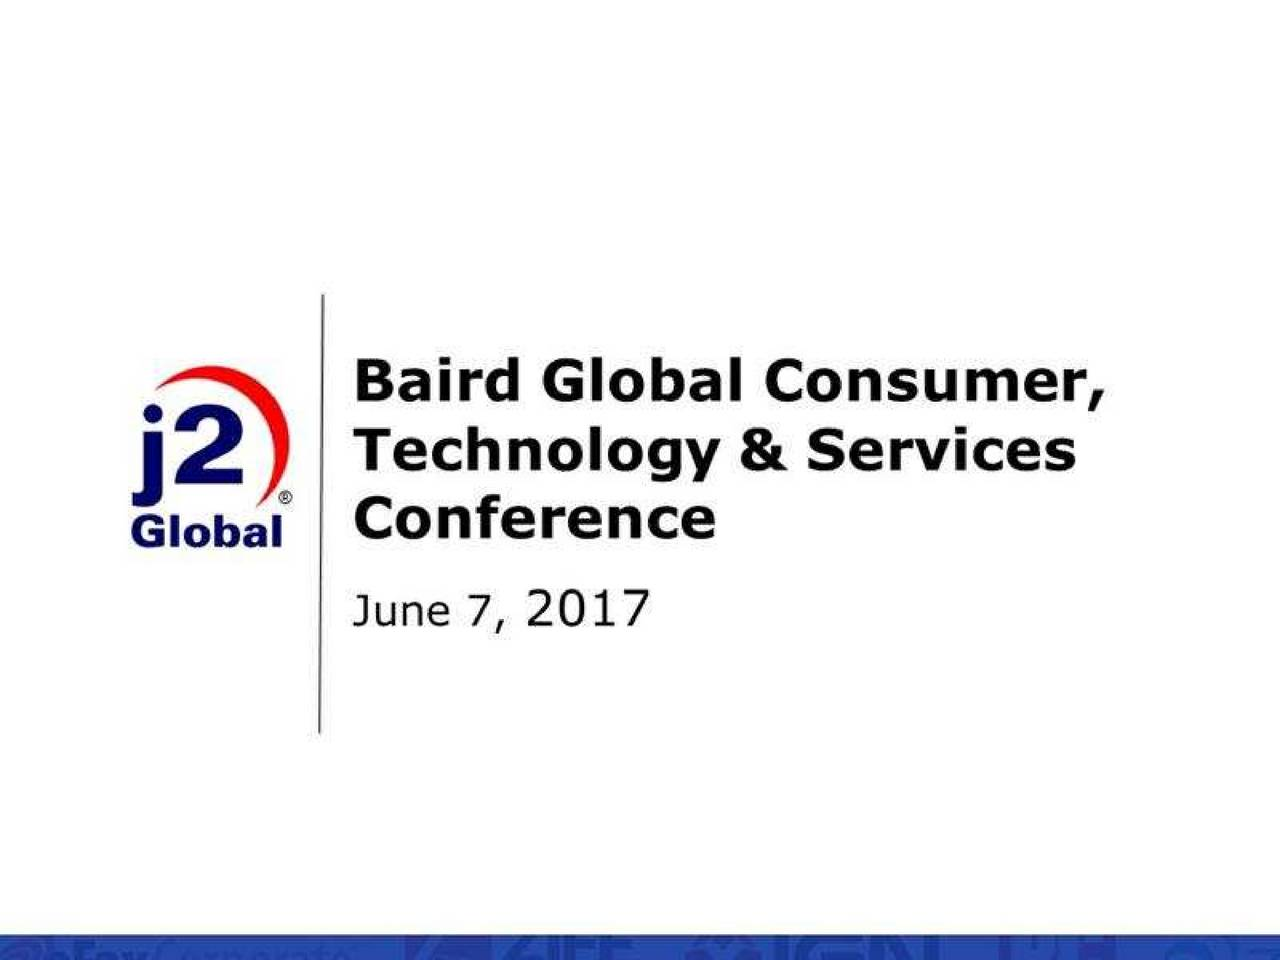 j2 Global (JCOM) Presents At Baird's Global Consumer